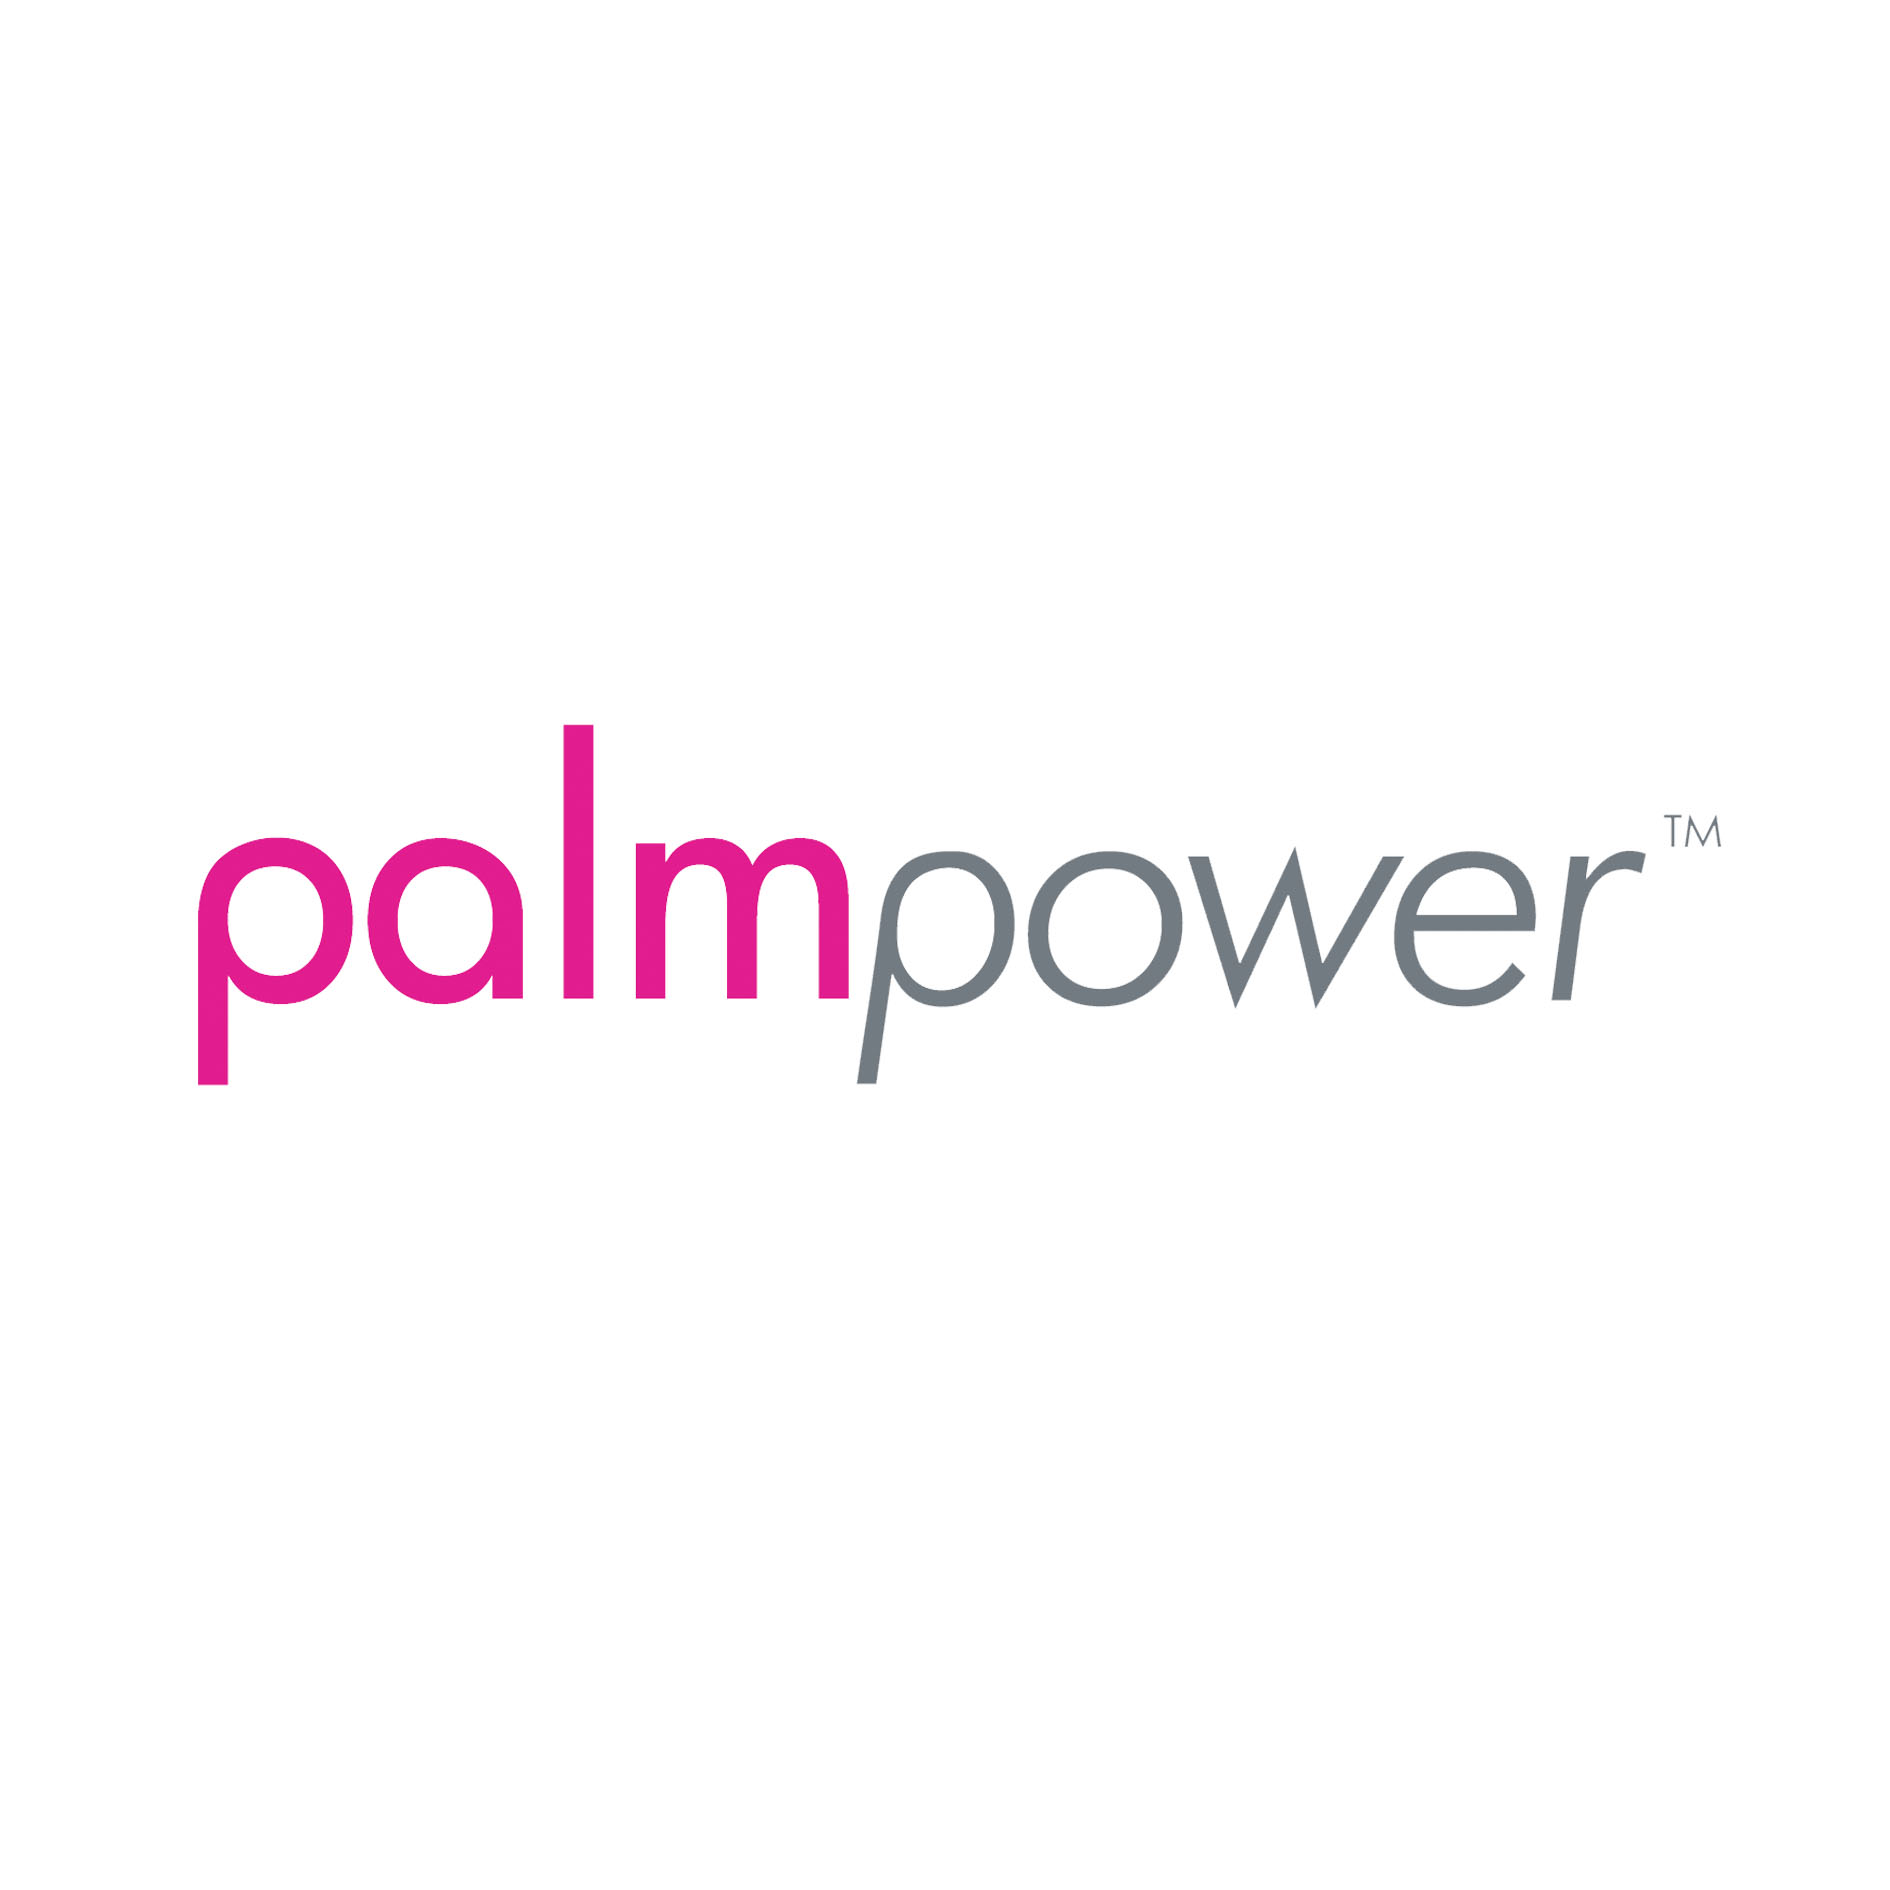 Palm Power Logo